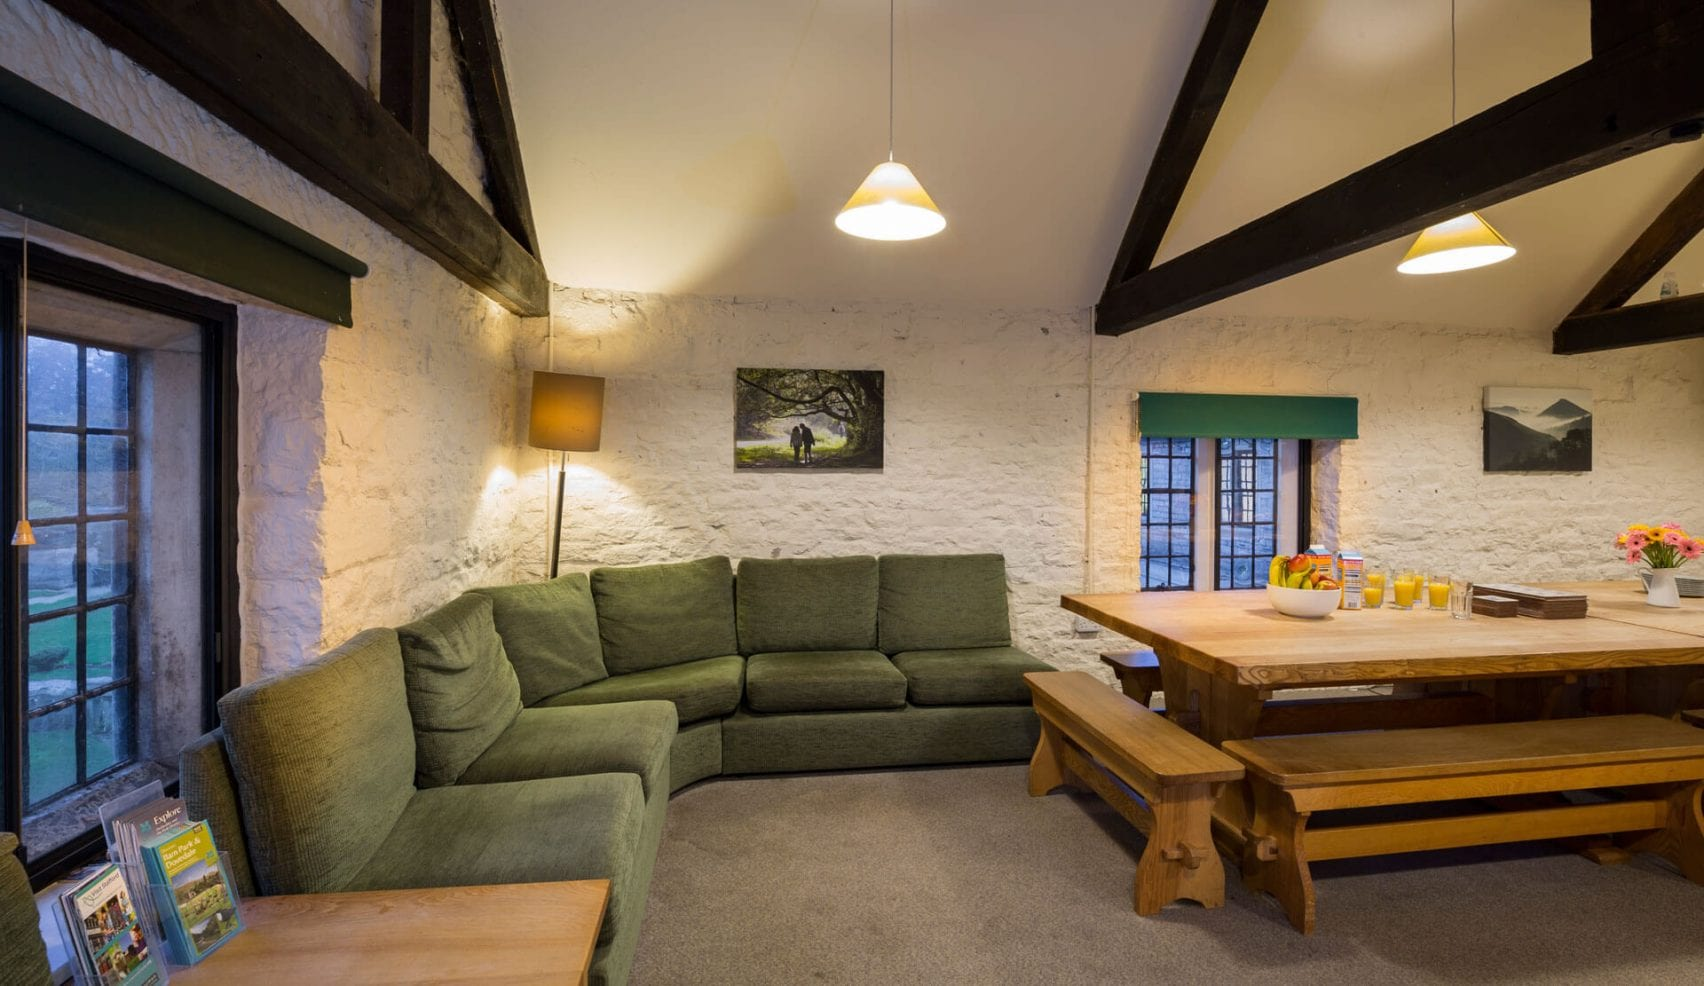 Ilam Bunkhouse Self Catering Accommodation